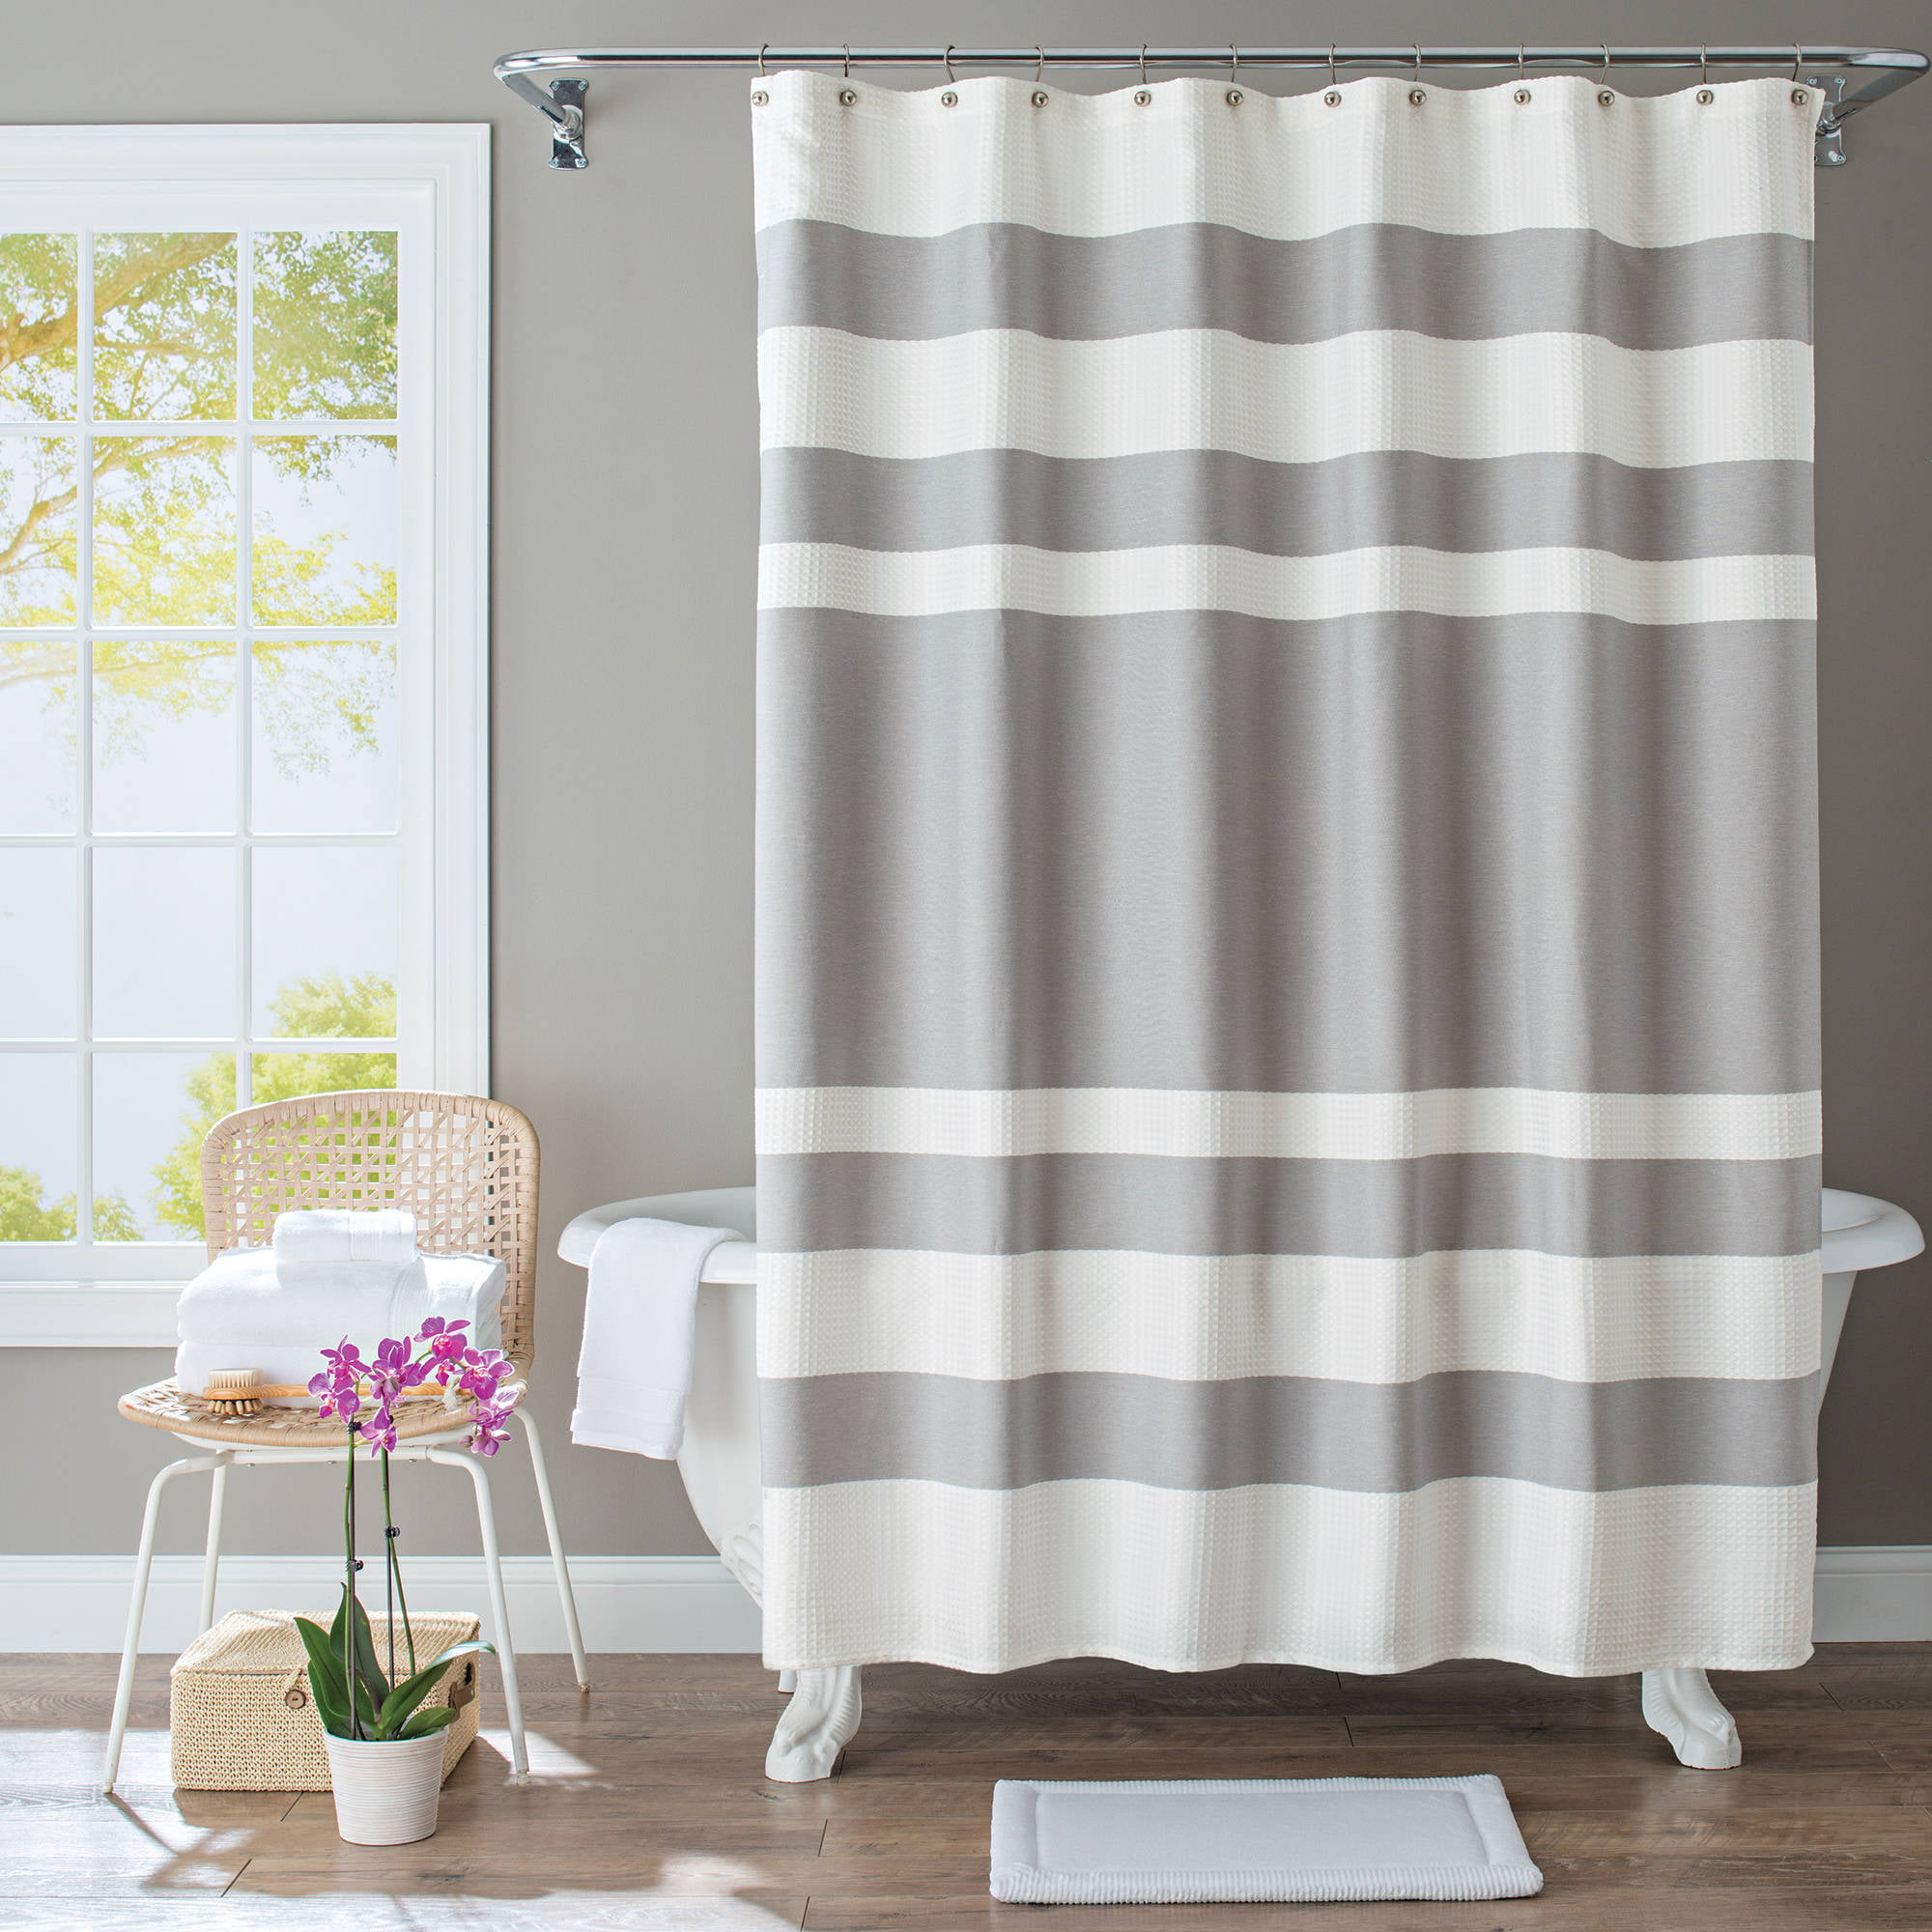 Nice Better Homes And Gardens Waffle Stripe Fabric Shower Curtain   Walmart.com